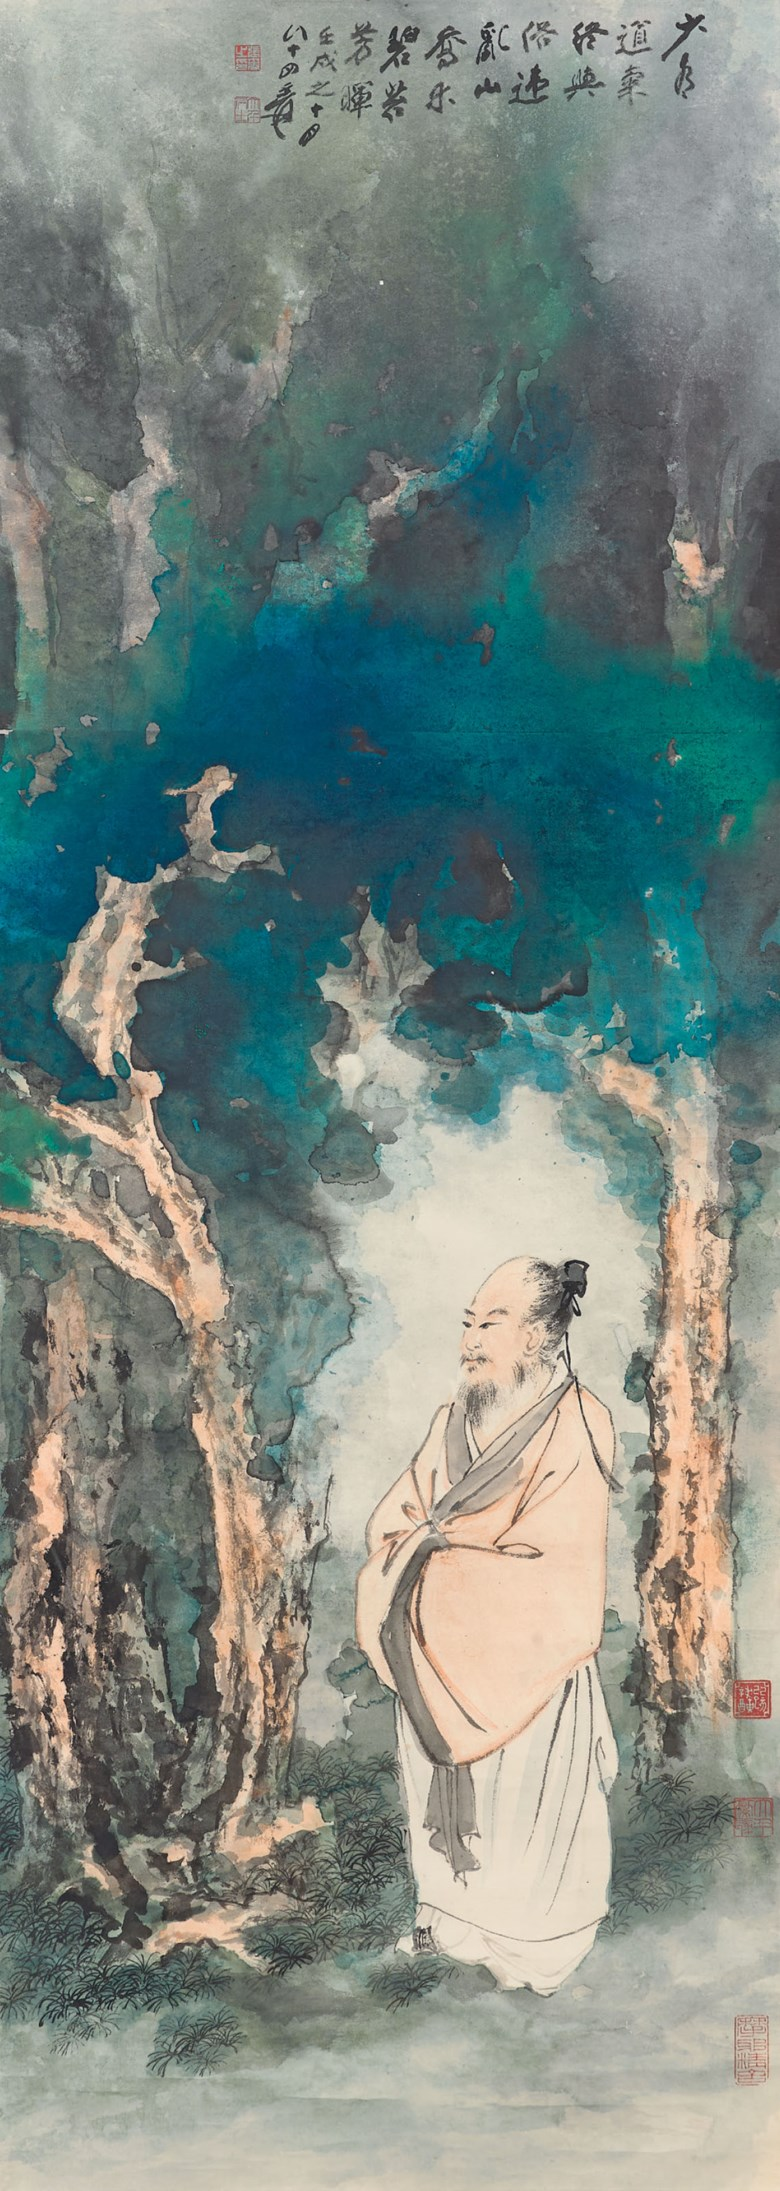 Zhang Daqian (1899-1983) Lofty Scholar by Lush Trees, 1982. 177 x 61  cm (69⅝ x 24  in). Sold for HKD 21,700,000 in Fine Chinese Modern Paintings on 29 May 2018 at Christie's Hong Kong